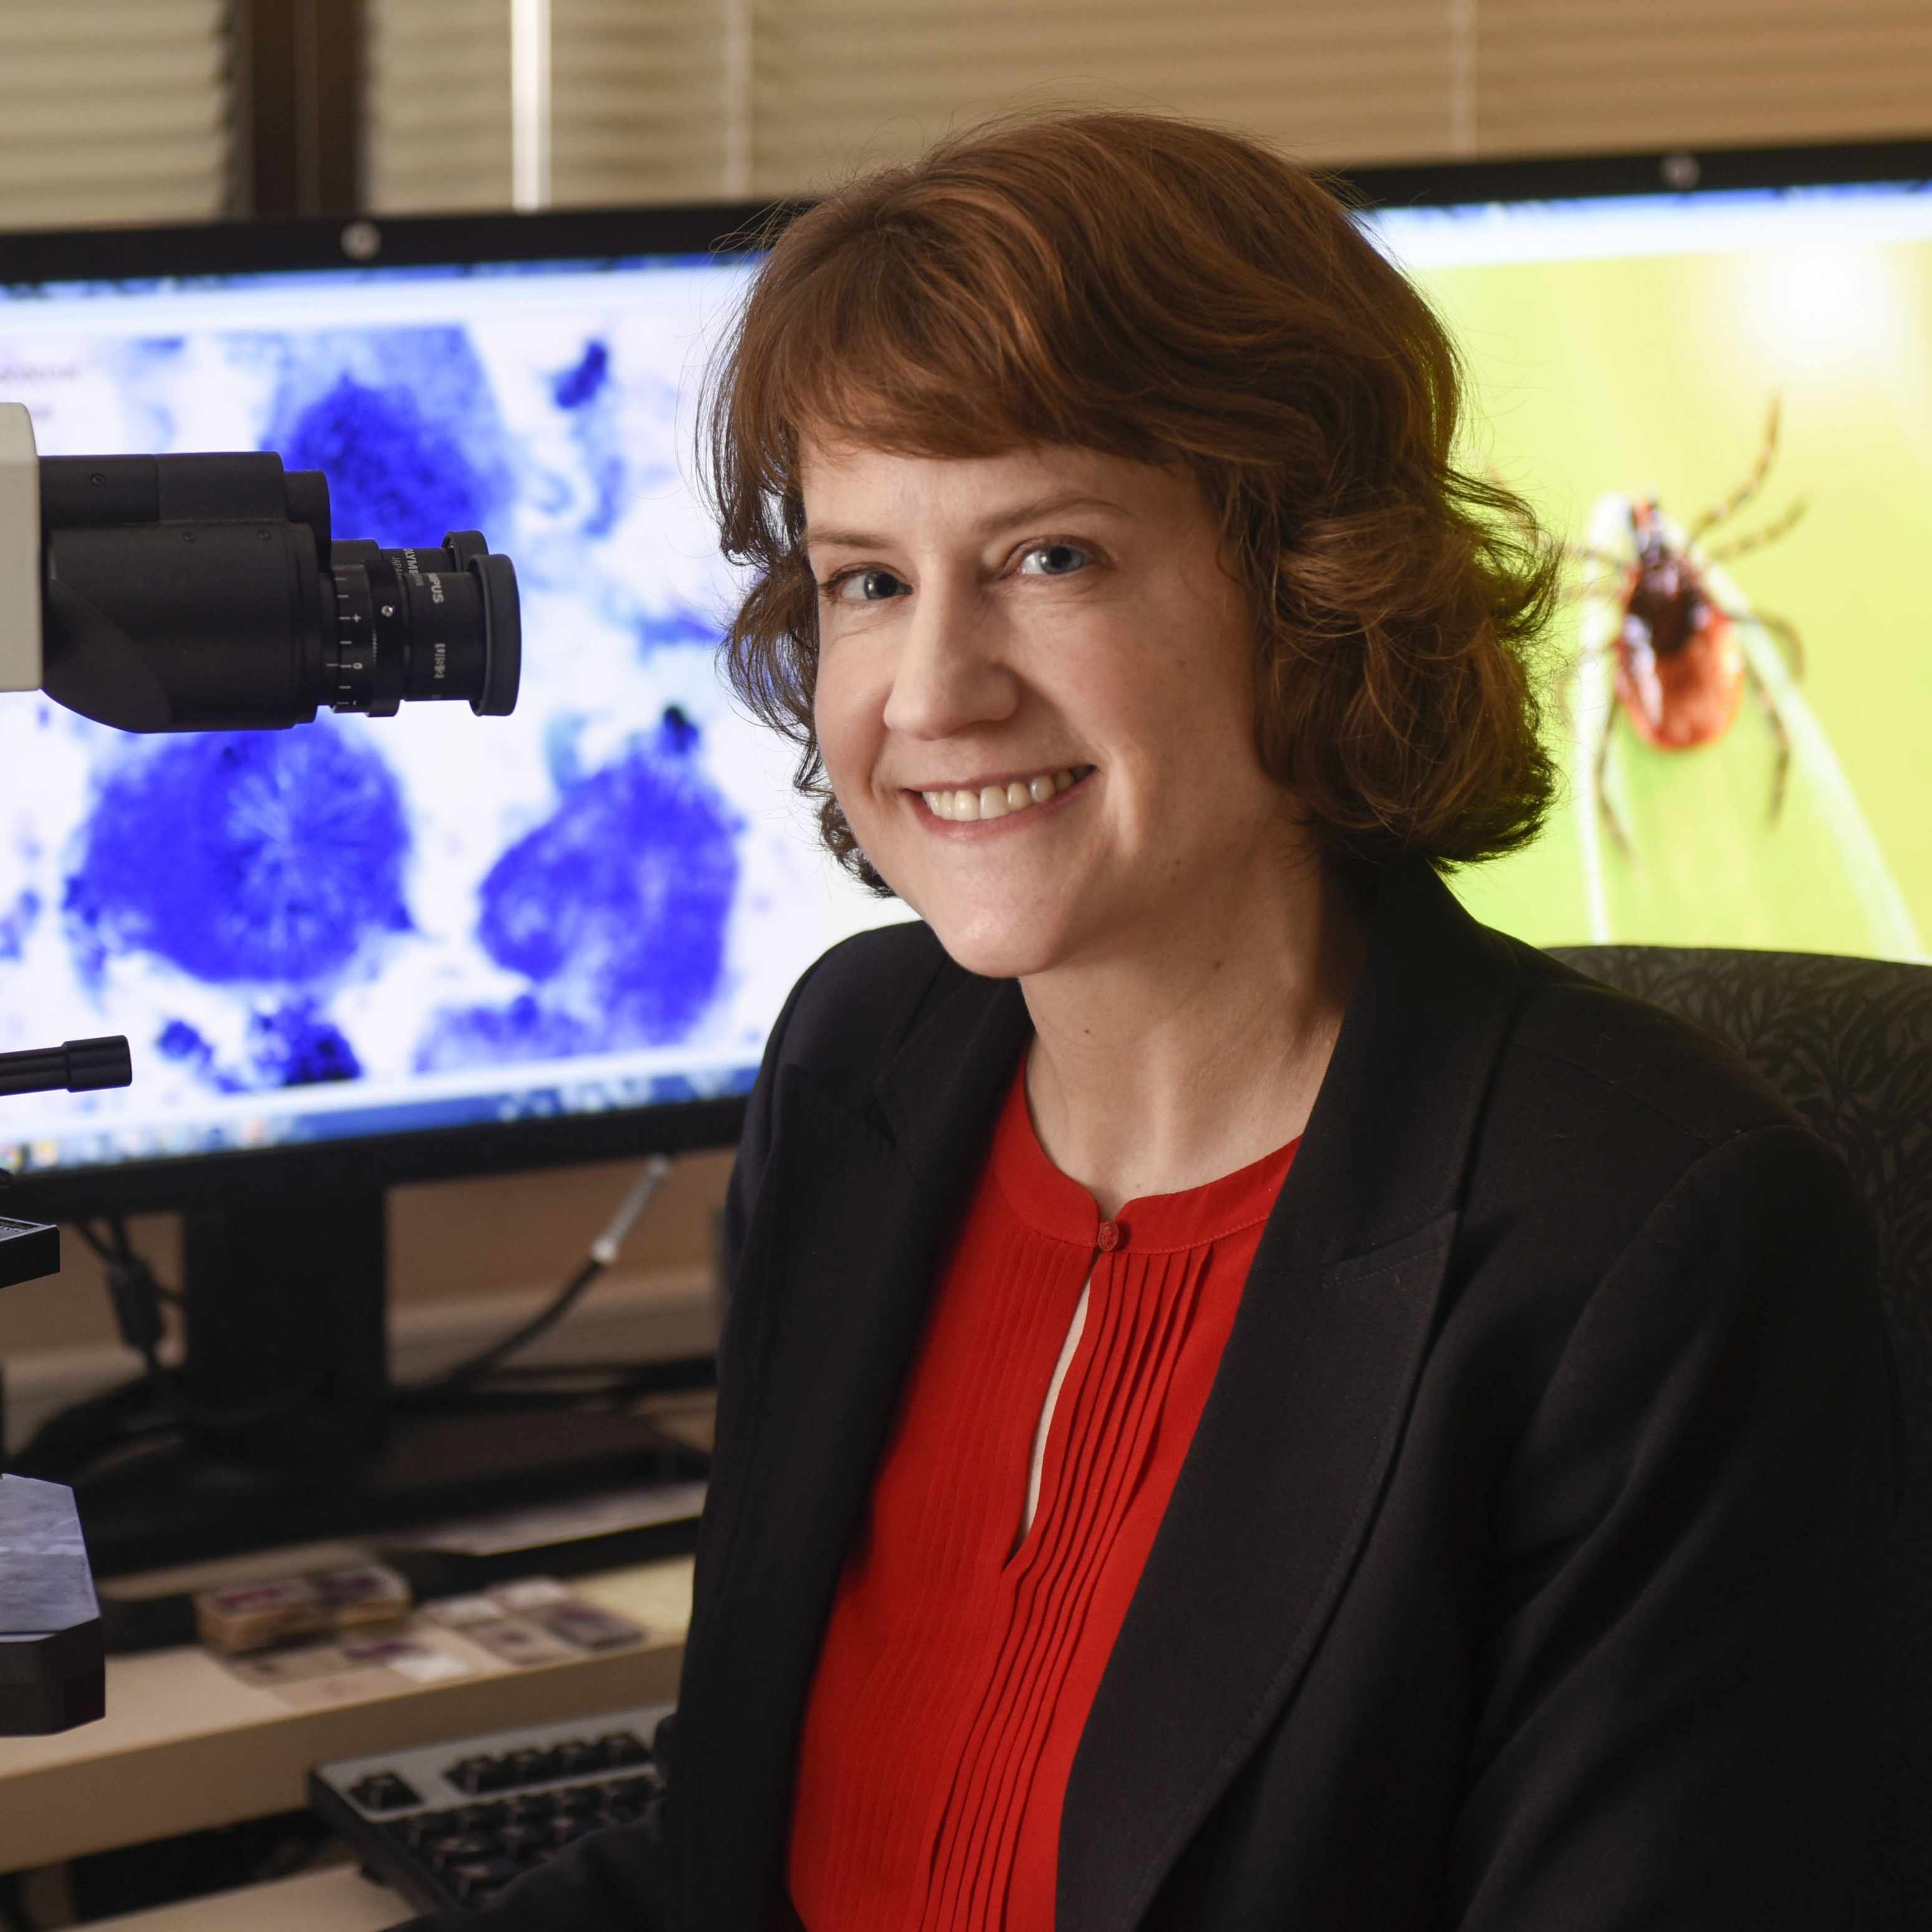 Dr. Bobbi Pritt in a lab, sitting at a microscope, with computer monitors in the background